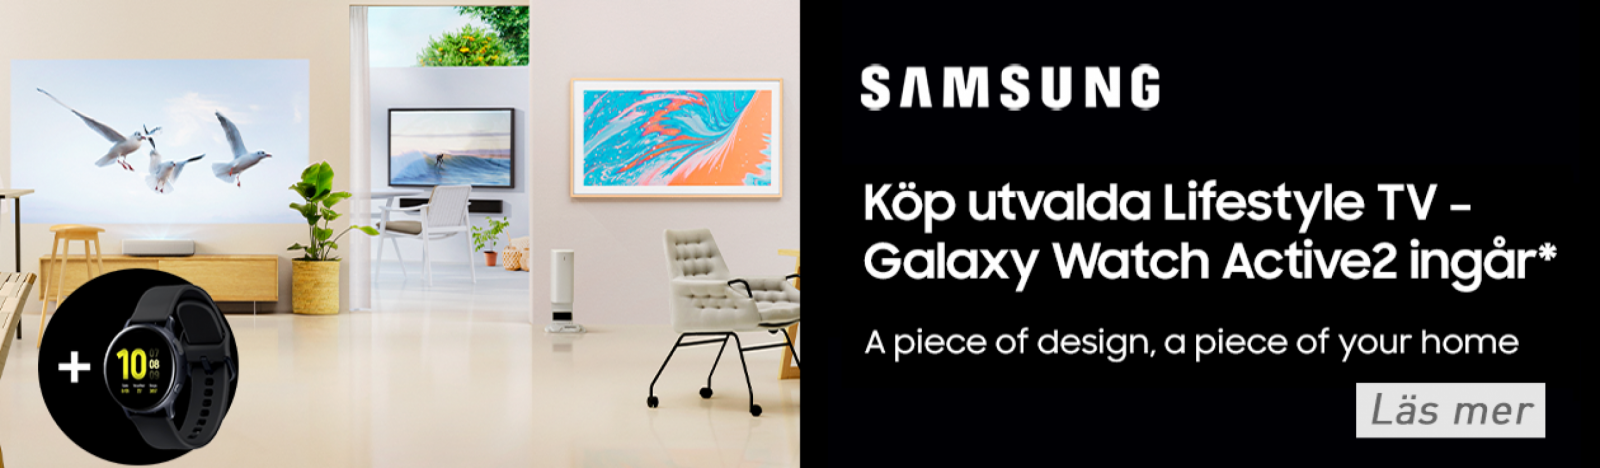 banner_samsung_the_terrace_outdoor_tv_75.png